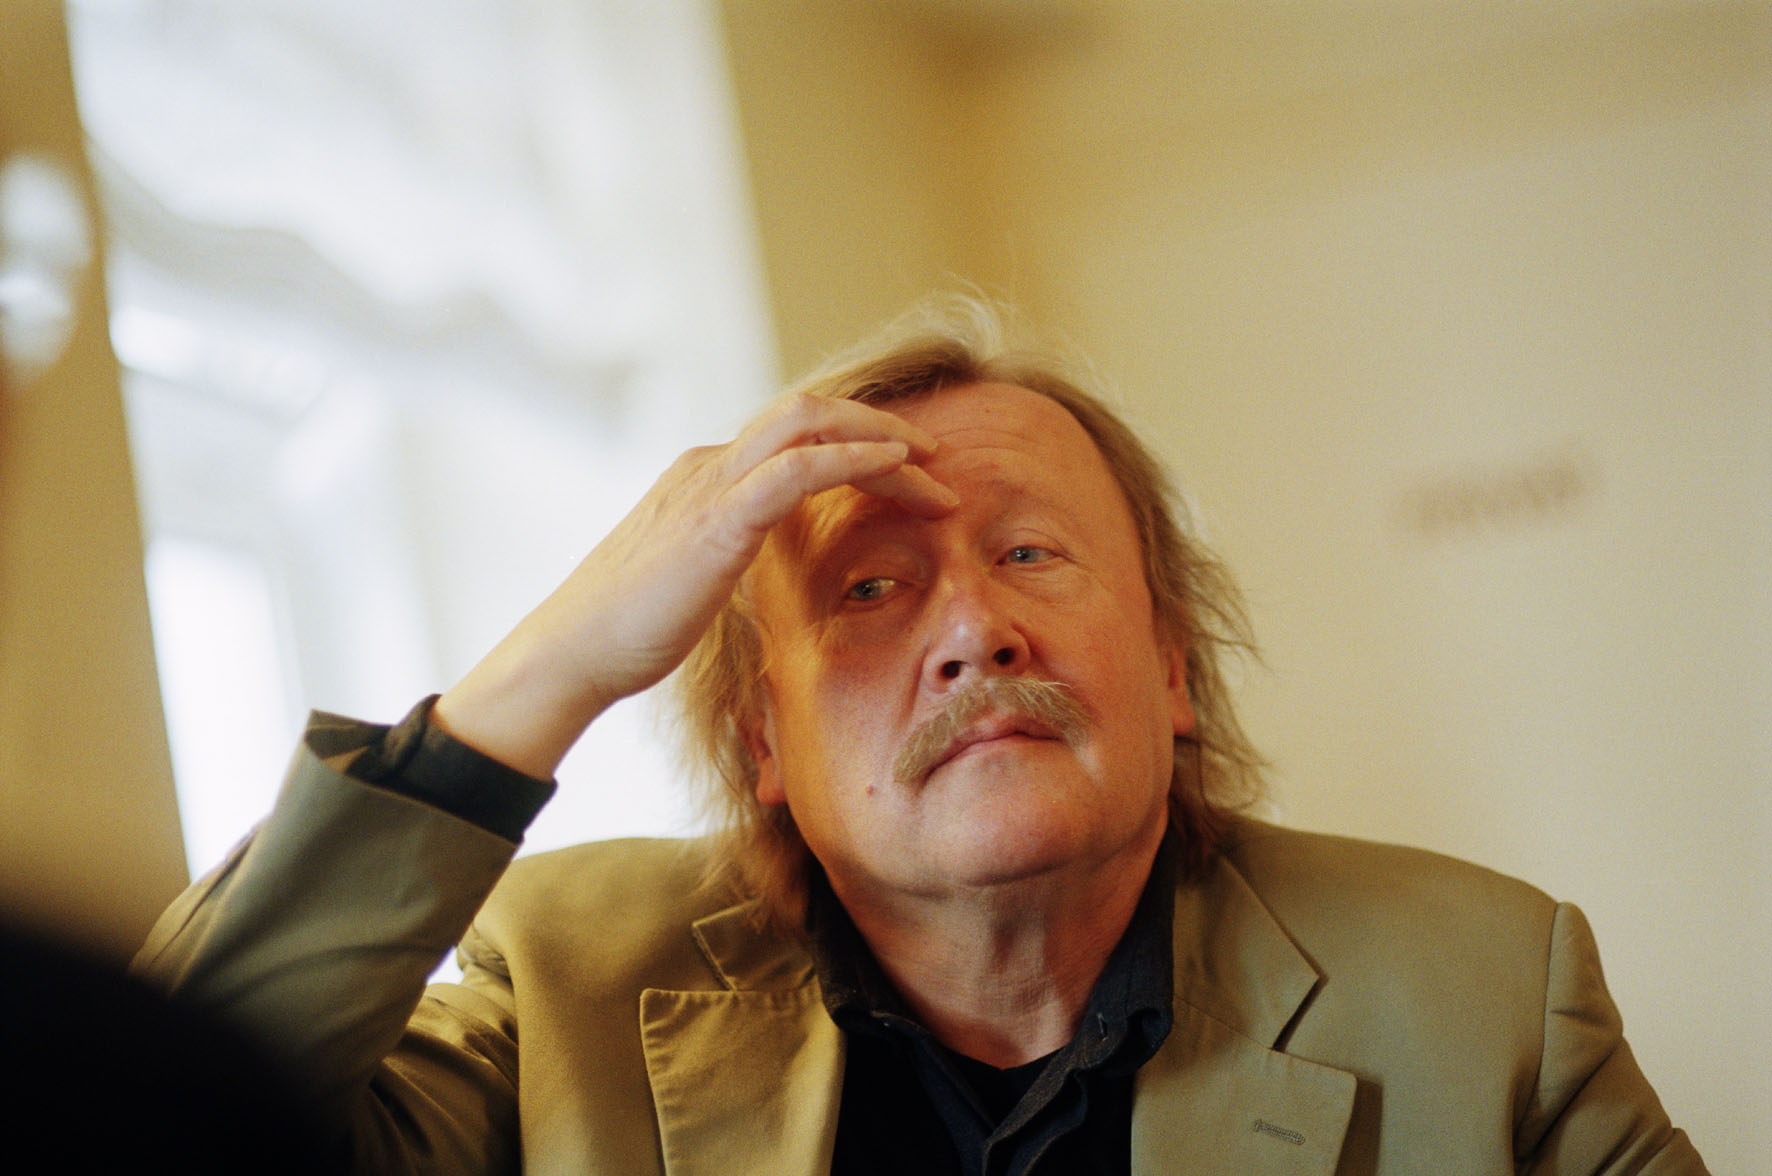 https://i0.wp.com/commons.ch/wp-content/uploads/sloterdijk.jpg